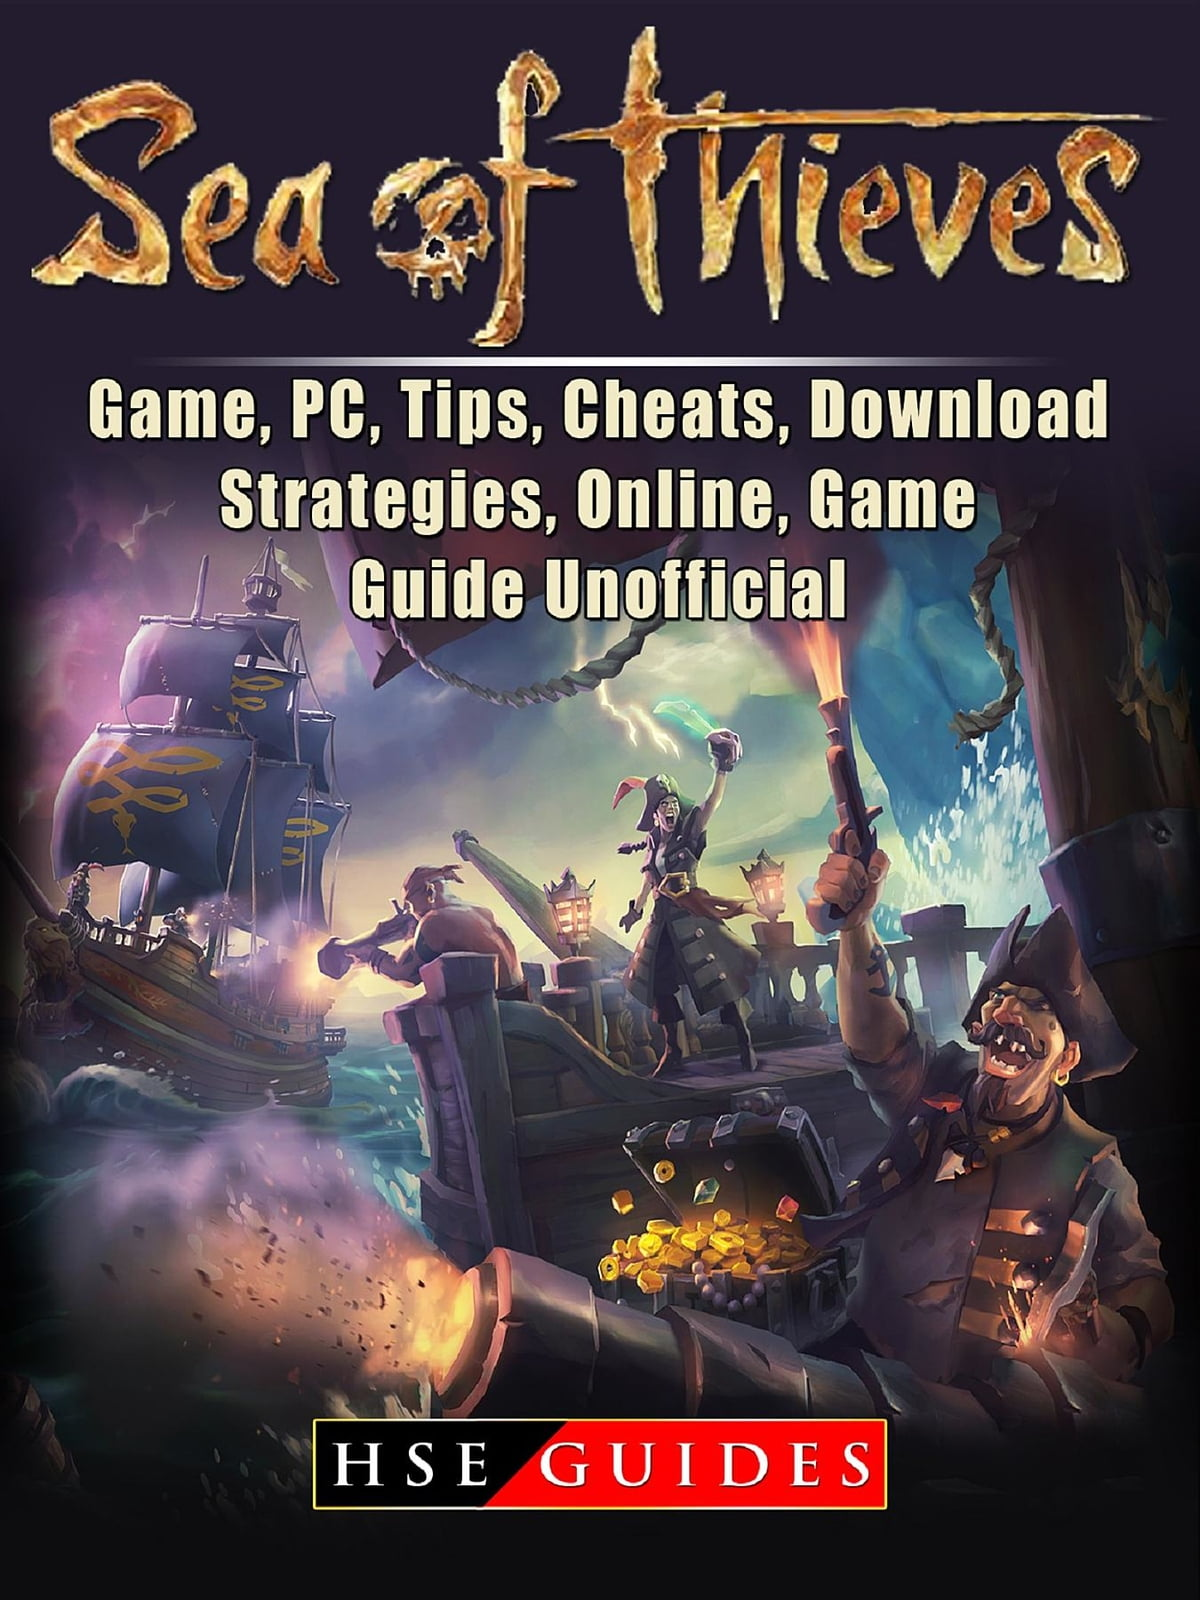 Sea of Thieves Game, PC, Tips, Cheats, Download, Strategies, Online, Game  Guide Unofficial eBook by HSE Guides - Rakuten Kobo